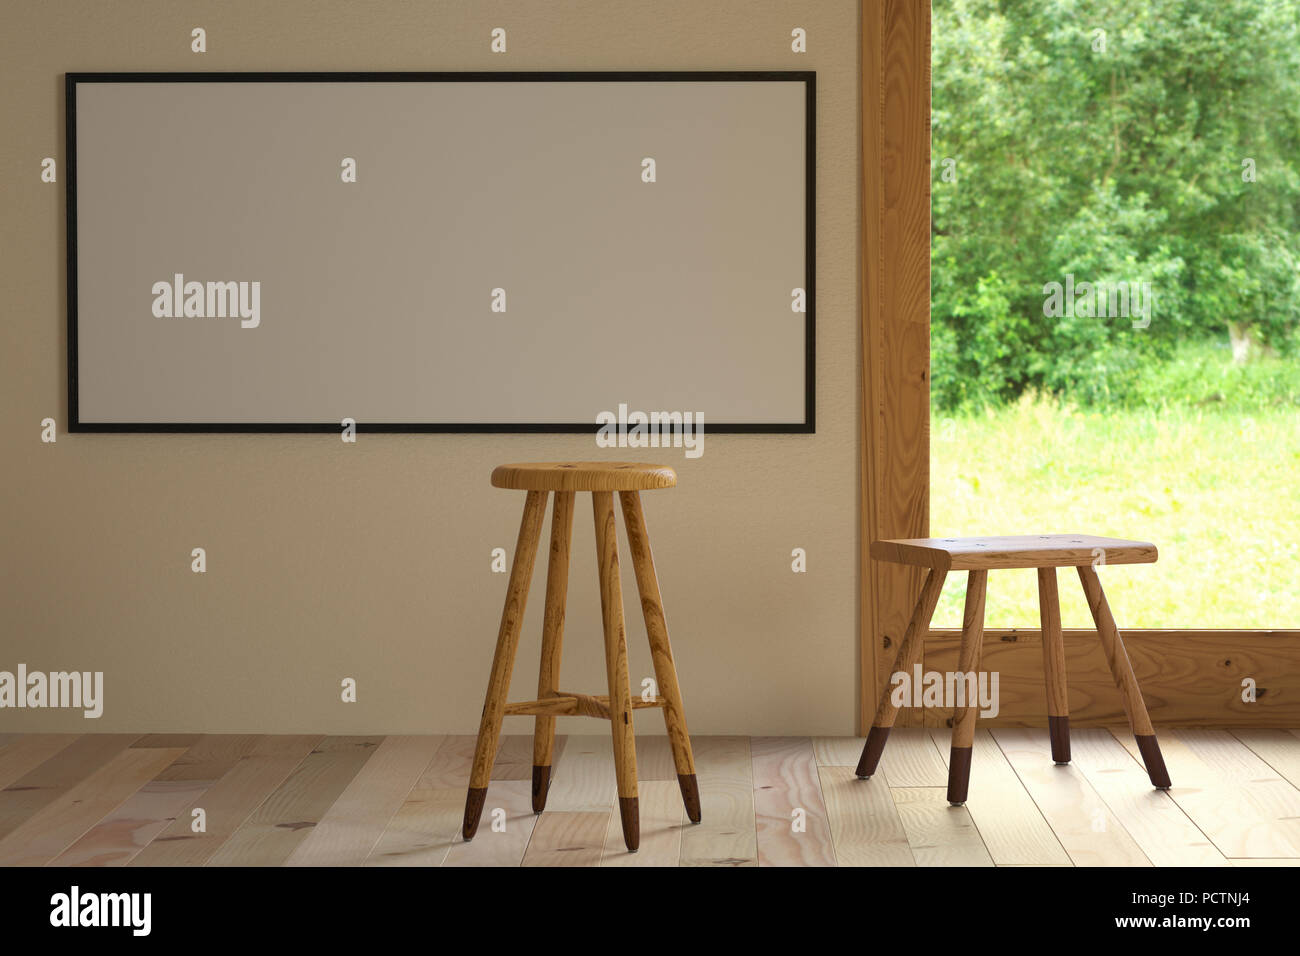 3d illustration interior. Mockup a poster 56 x 120 cm inside building. Room with wooden floor and window overlooking the nature. Backless bar stool ma - Stock Image